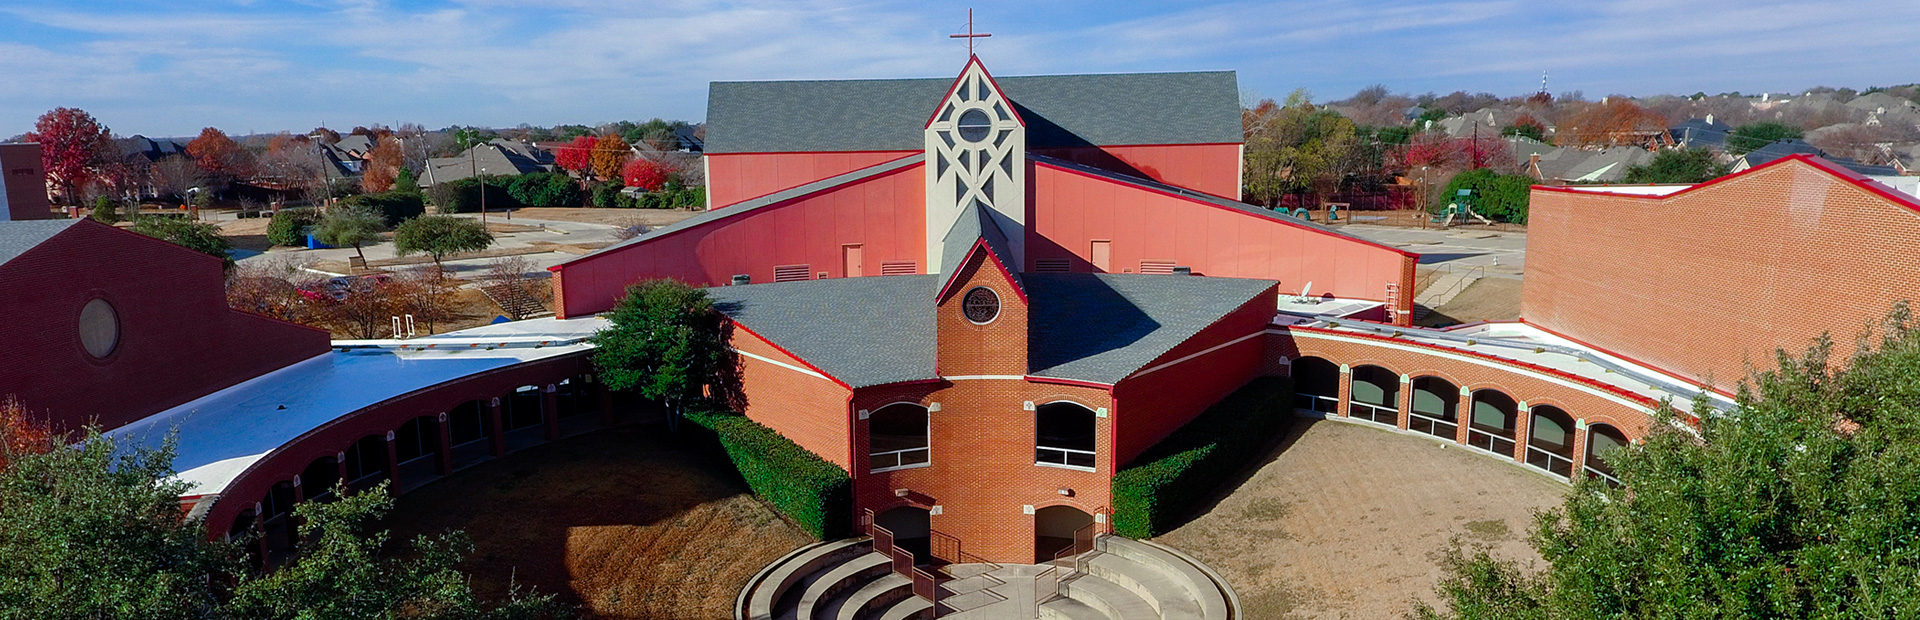 Church Roofing - Dallas Fort Worth & Denton